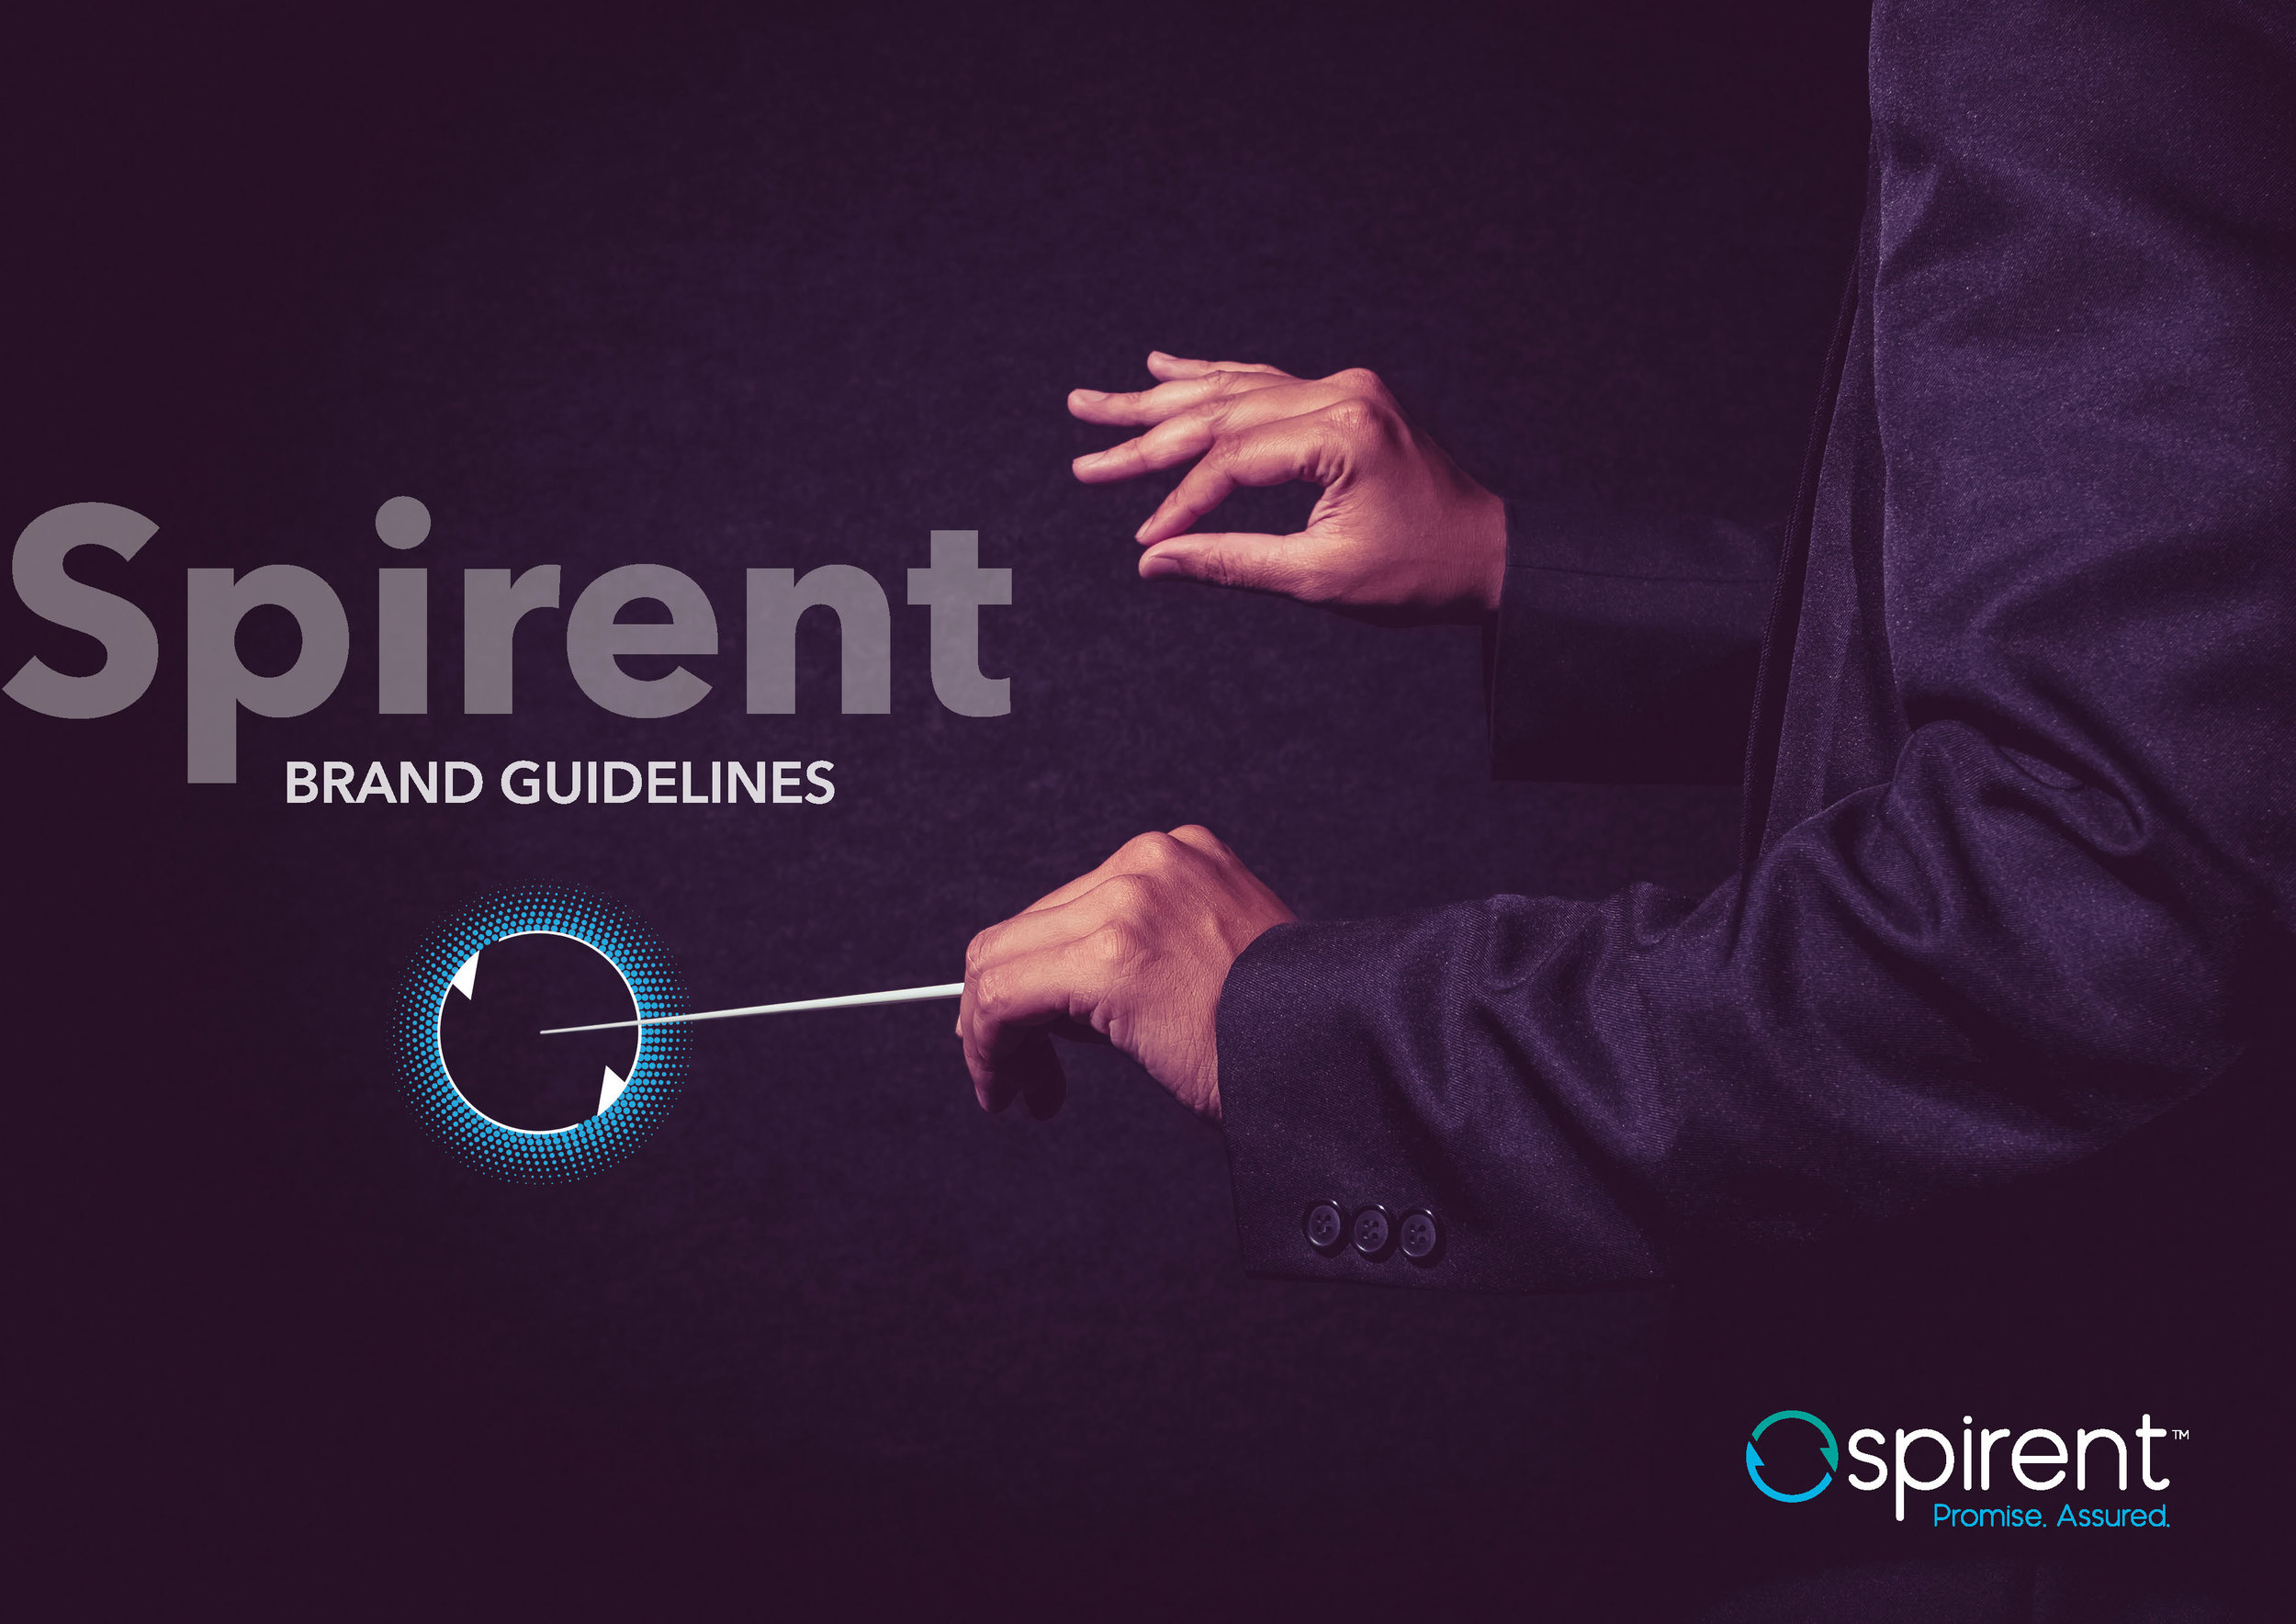 Spirent-Brand-Guidelines-7-18-18_Page_01.jpg